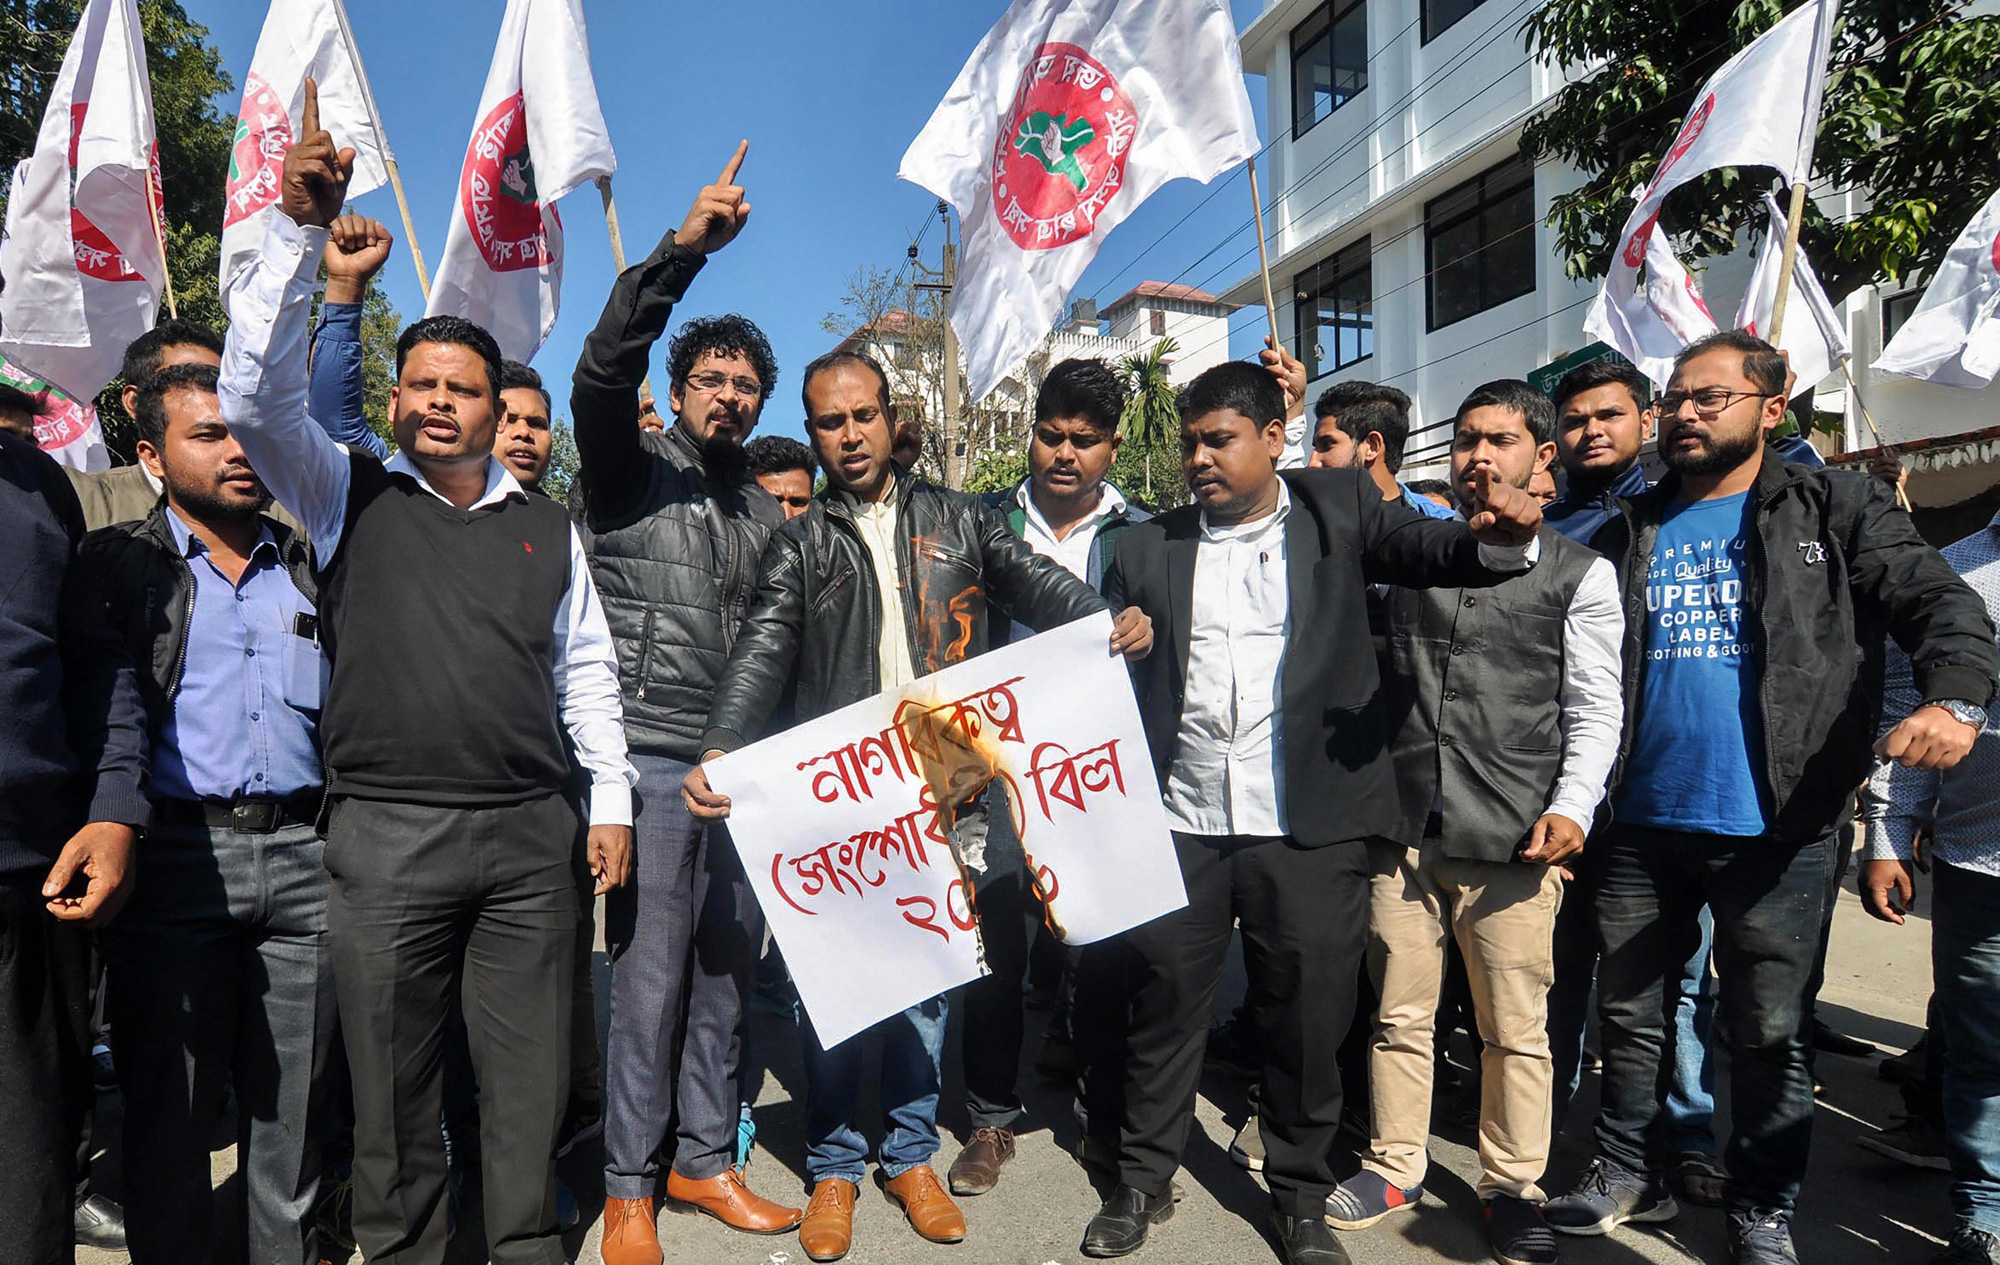 All Assam Students Union (AASU) activists hold placards as they raise slogans protesting against Citizenship (Amendment) Bill, 2016, in Guwahati on Monday, January 7, 2019.